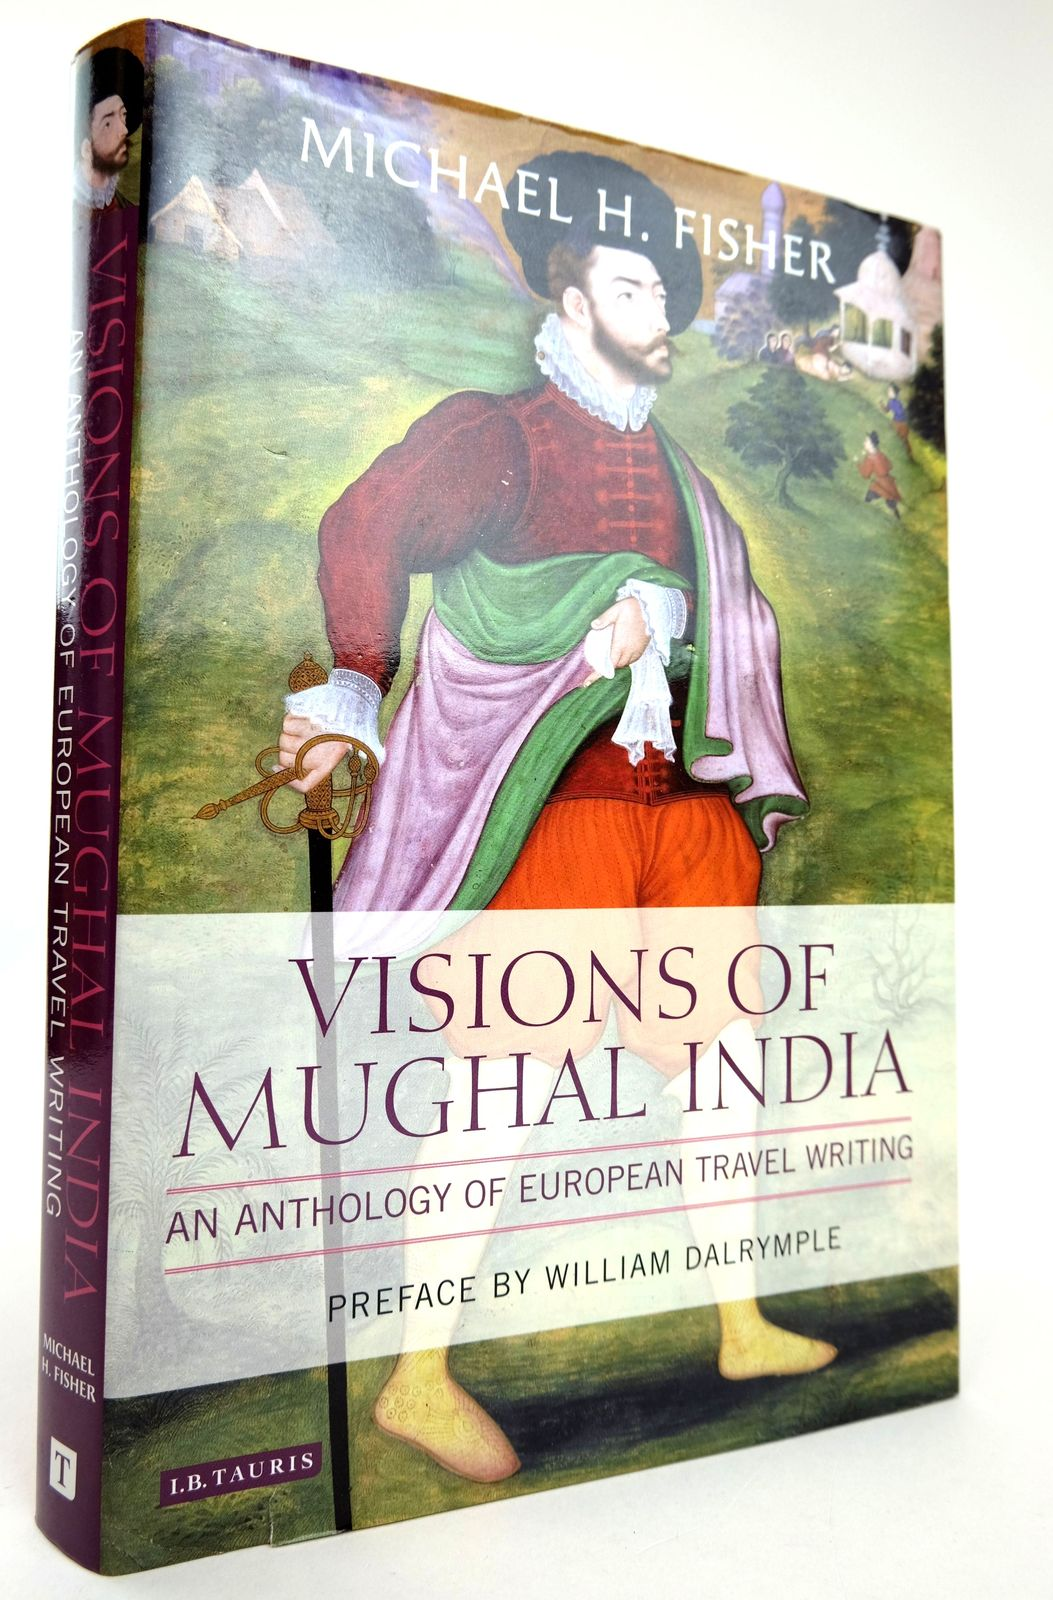 Photo of VISIONS OF MUGHAL INDIA: AN ANTHOLOGY OF EUROPEAN TRAVEL WRITING written by Fisher, Michael H. published by I.B. Tauris & Co. Ltd. (STOCK CODE: 1818896)  for sale by Stella & Rose's Books